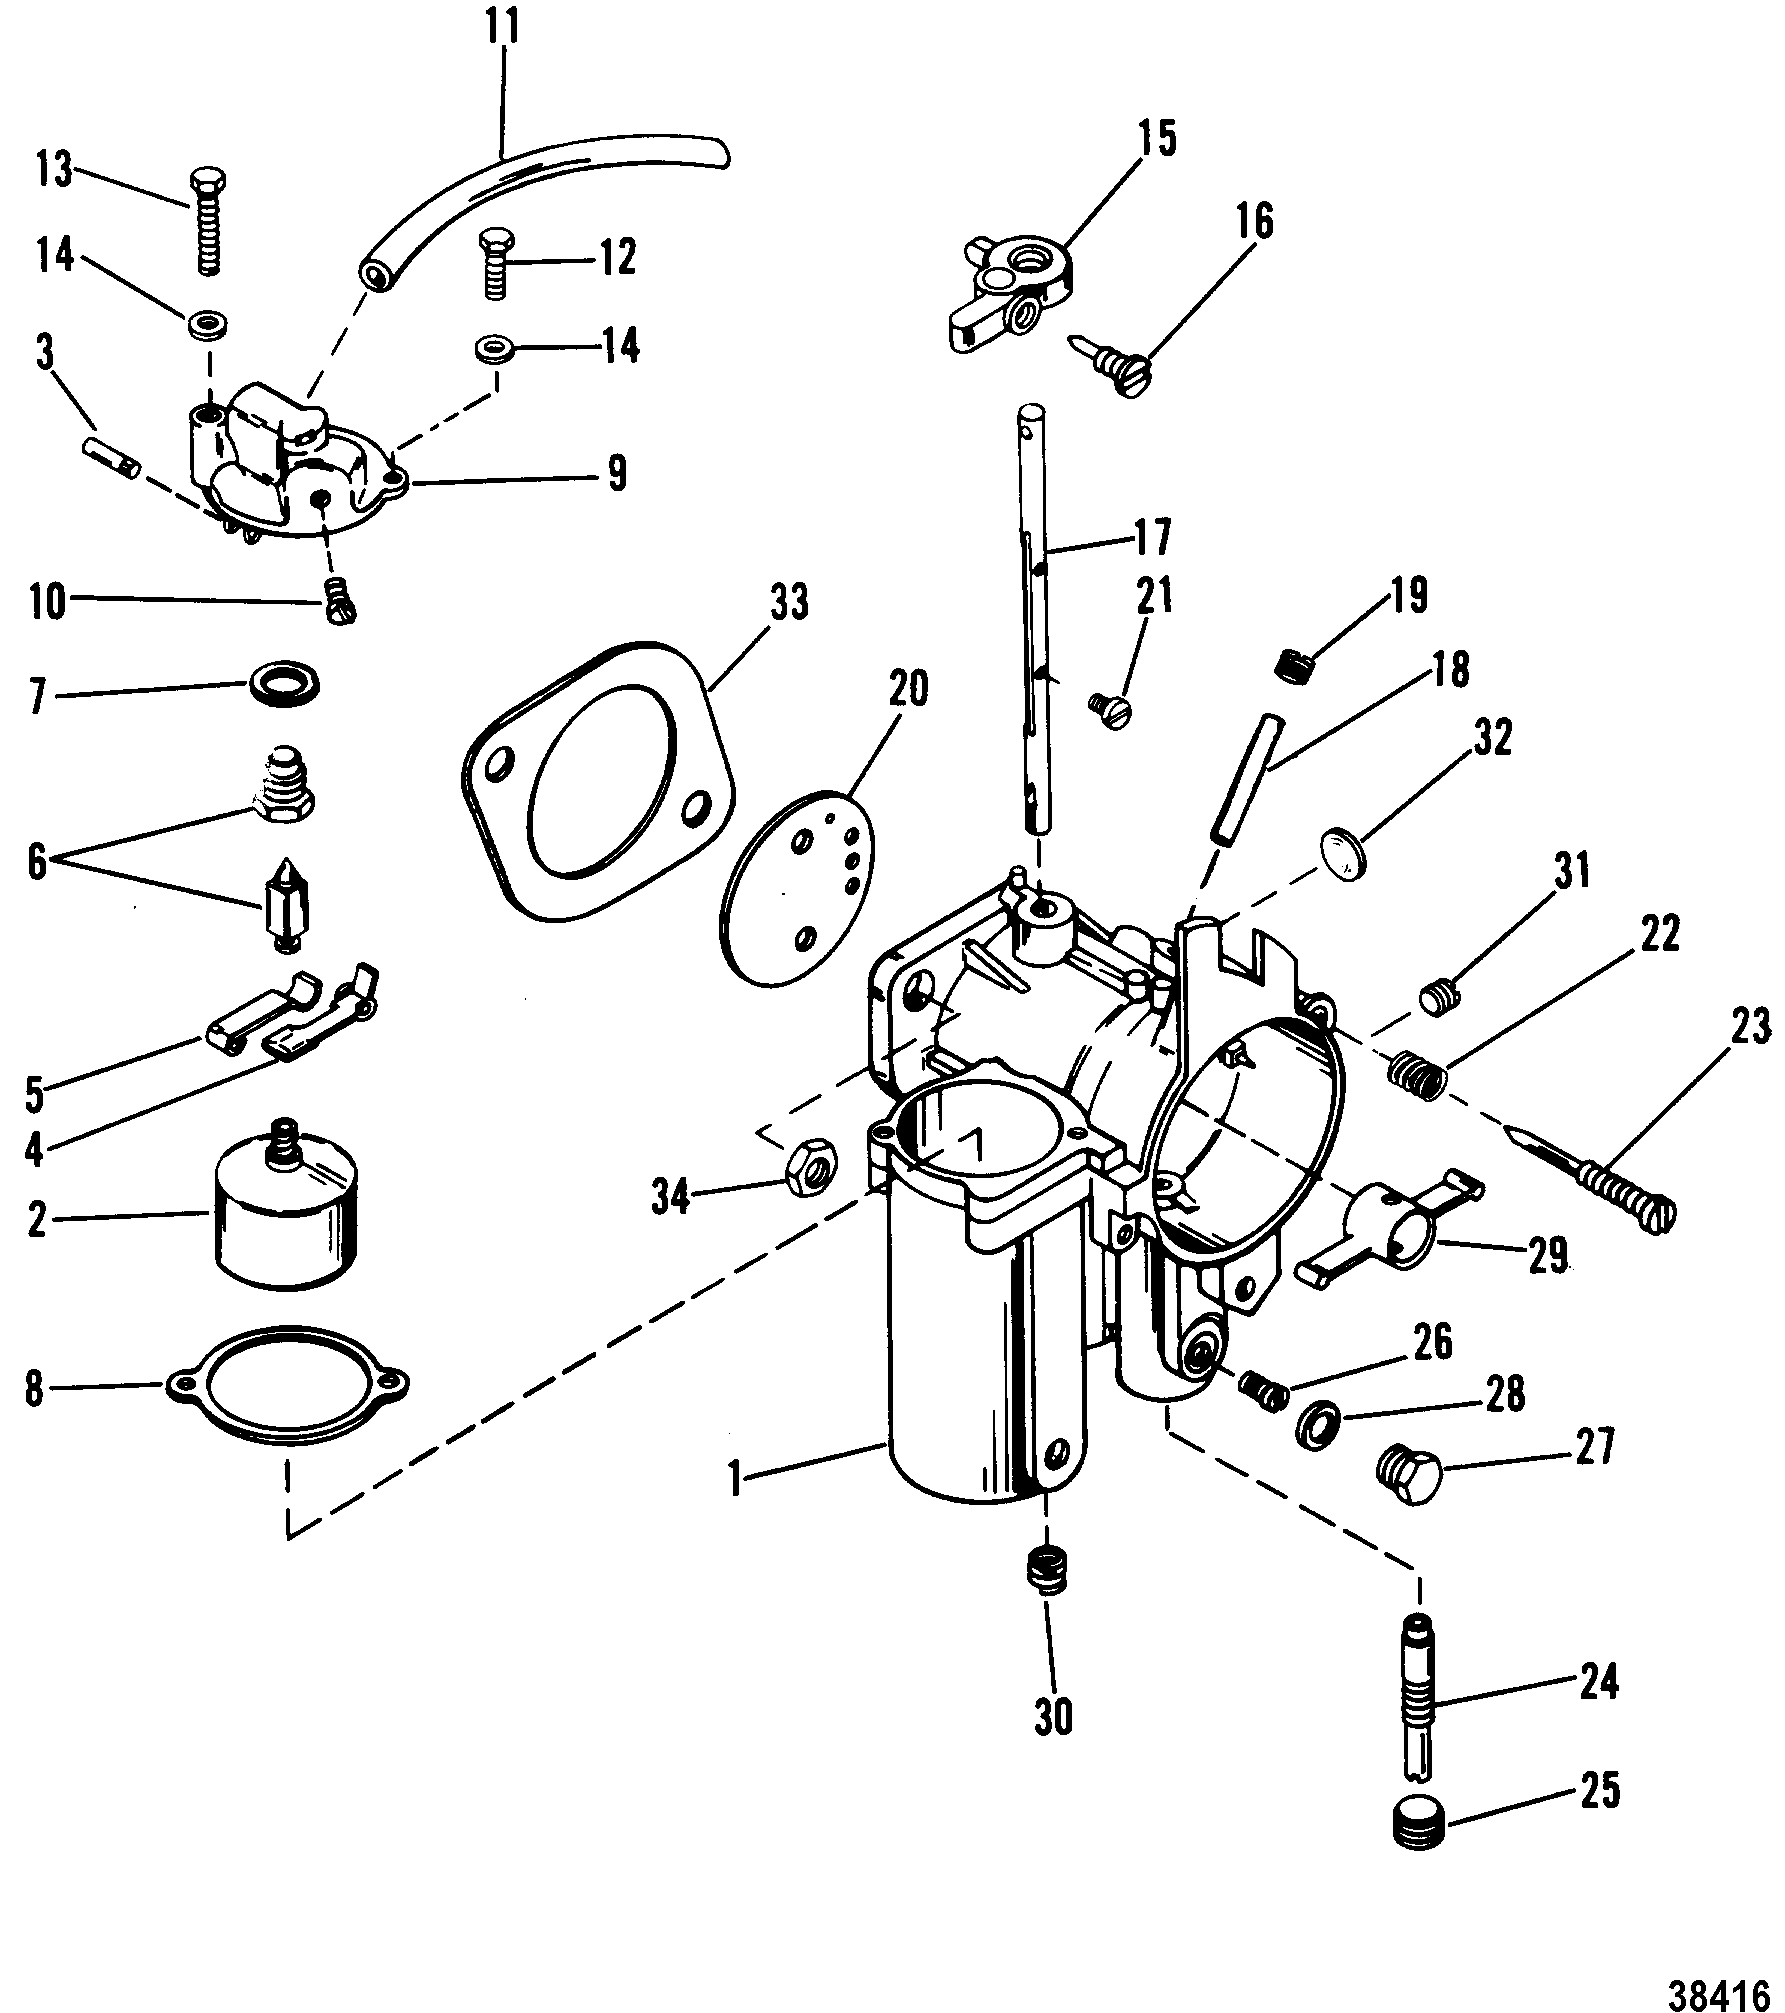 Carburetor For Mariner Mercury 90 115 Hp Inline 1978 Wiring Diagram Zoom